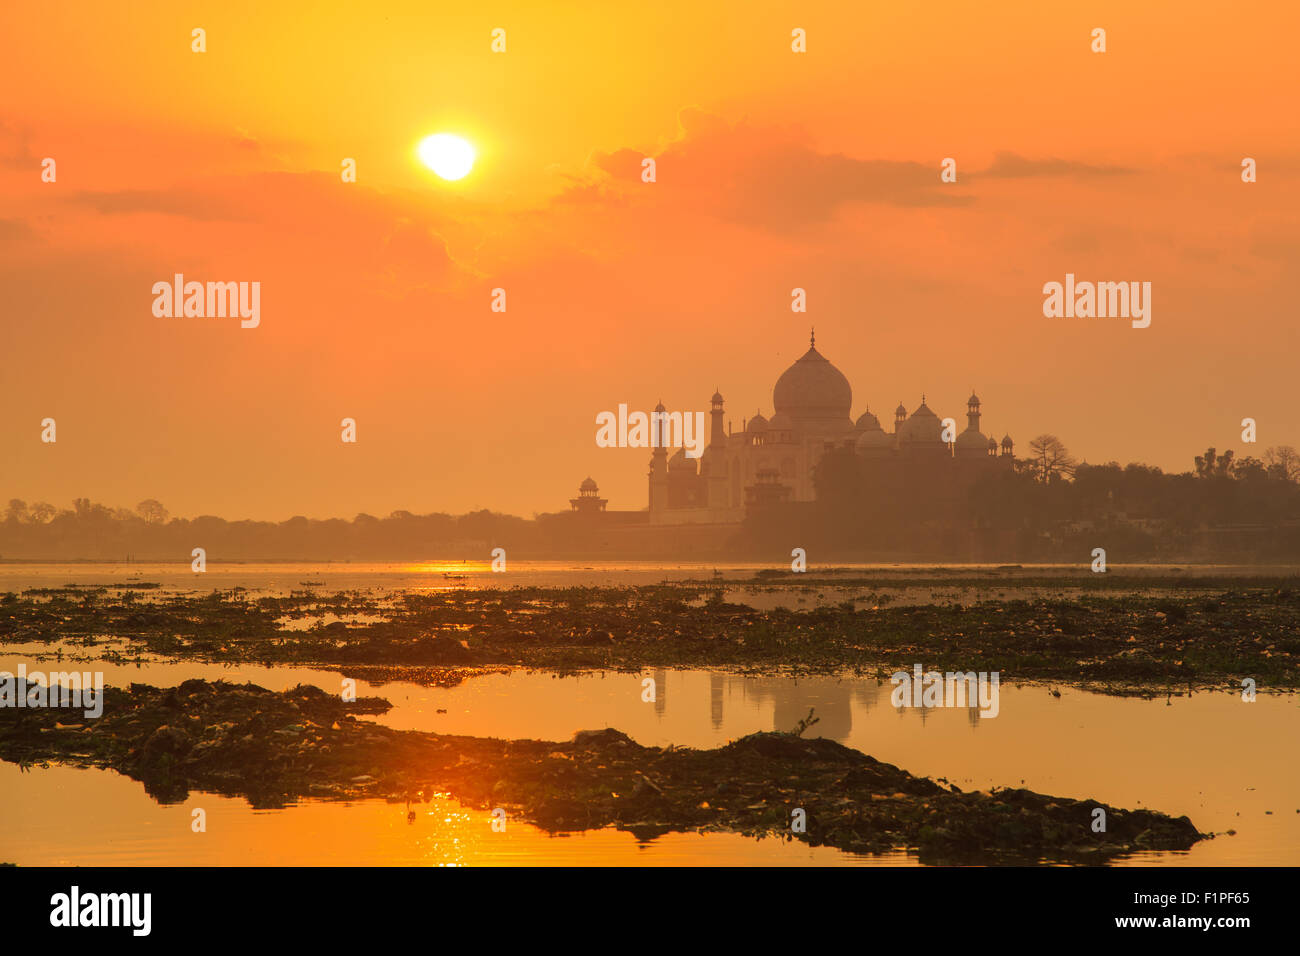 A sunrise view of Taj Mahal in Agra, India. - Stock Image